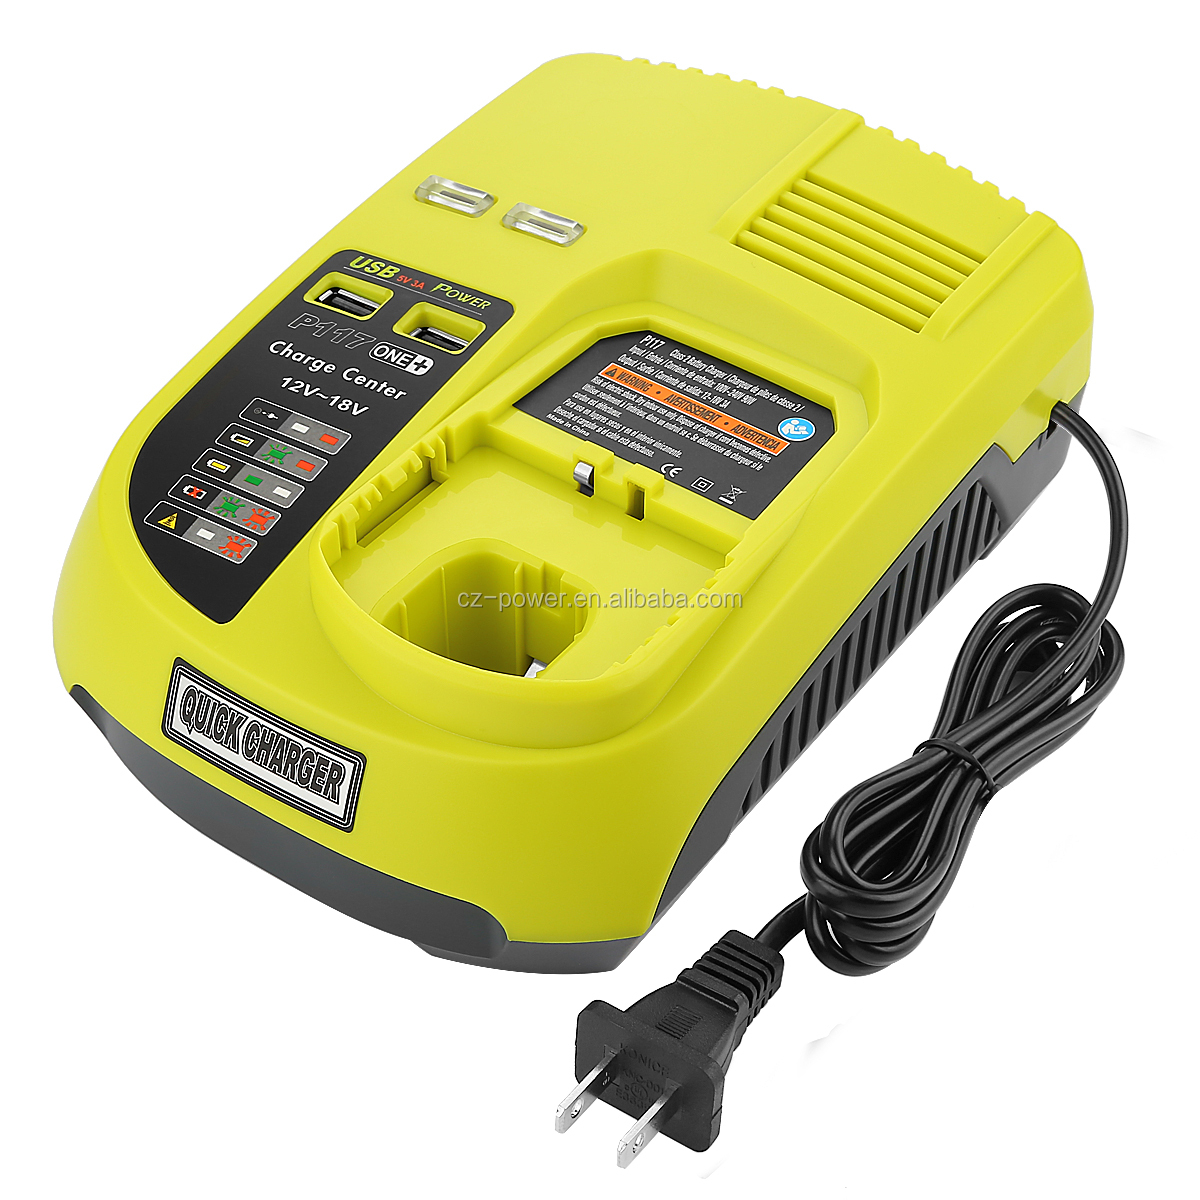 P117 Dual Chemistry IntelliPort Charger Li-ion & Ni-cad Ni-Mh Battery Charger 12V MAX and 18V MAX For Ryobi ONE Plus